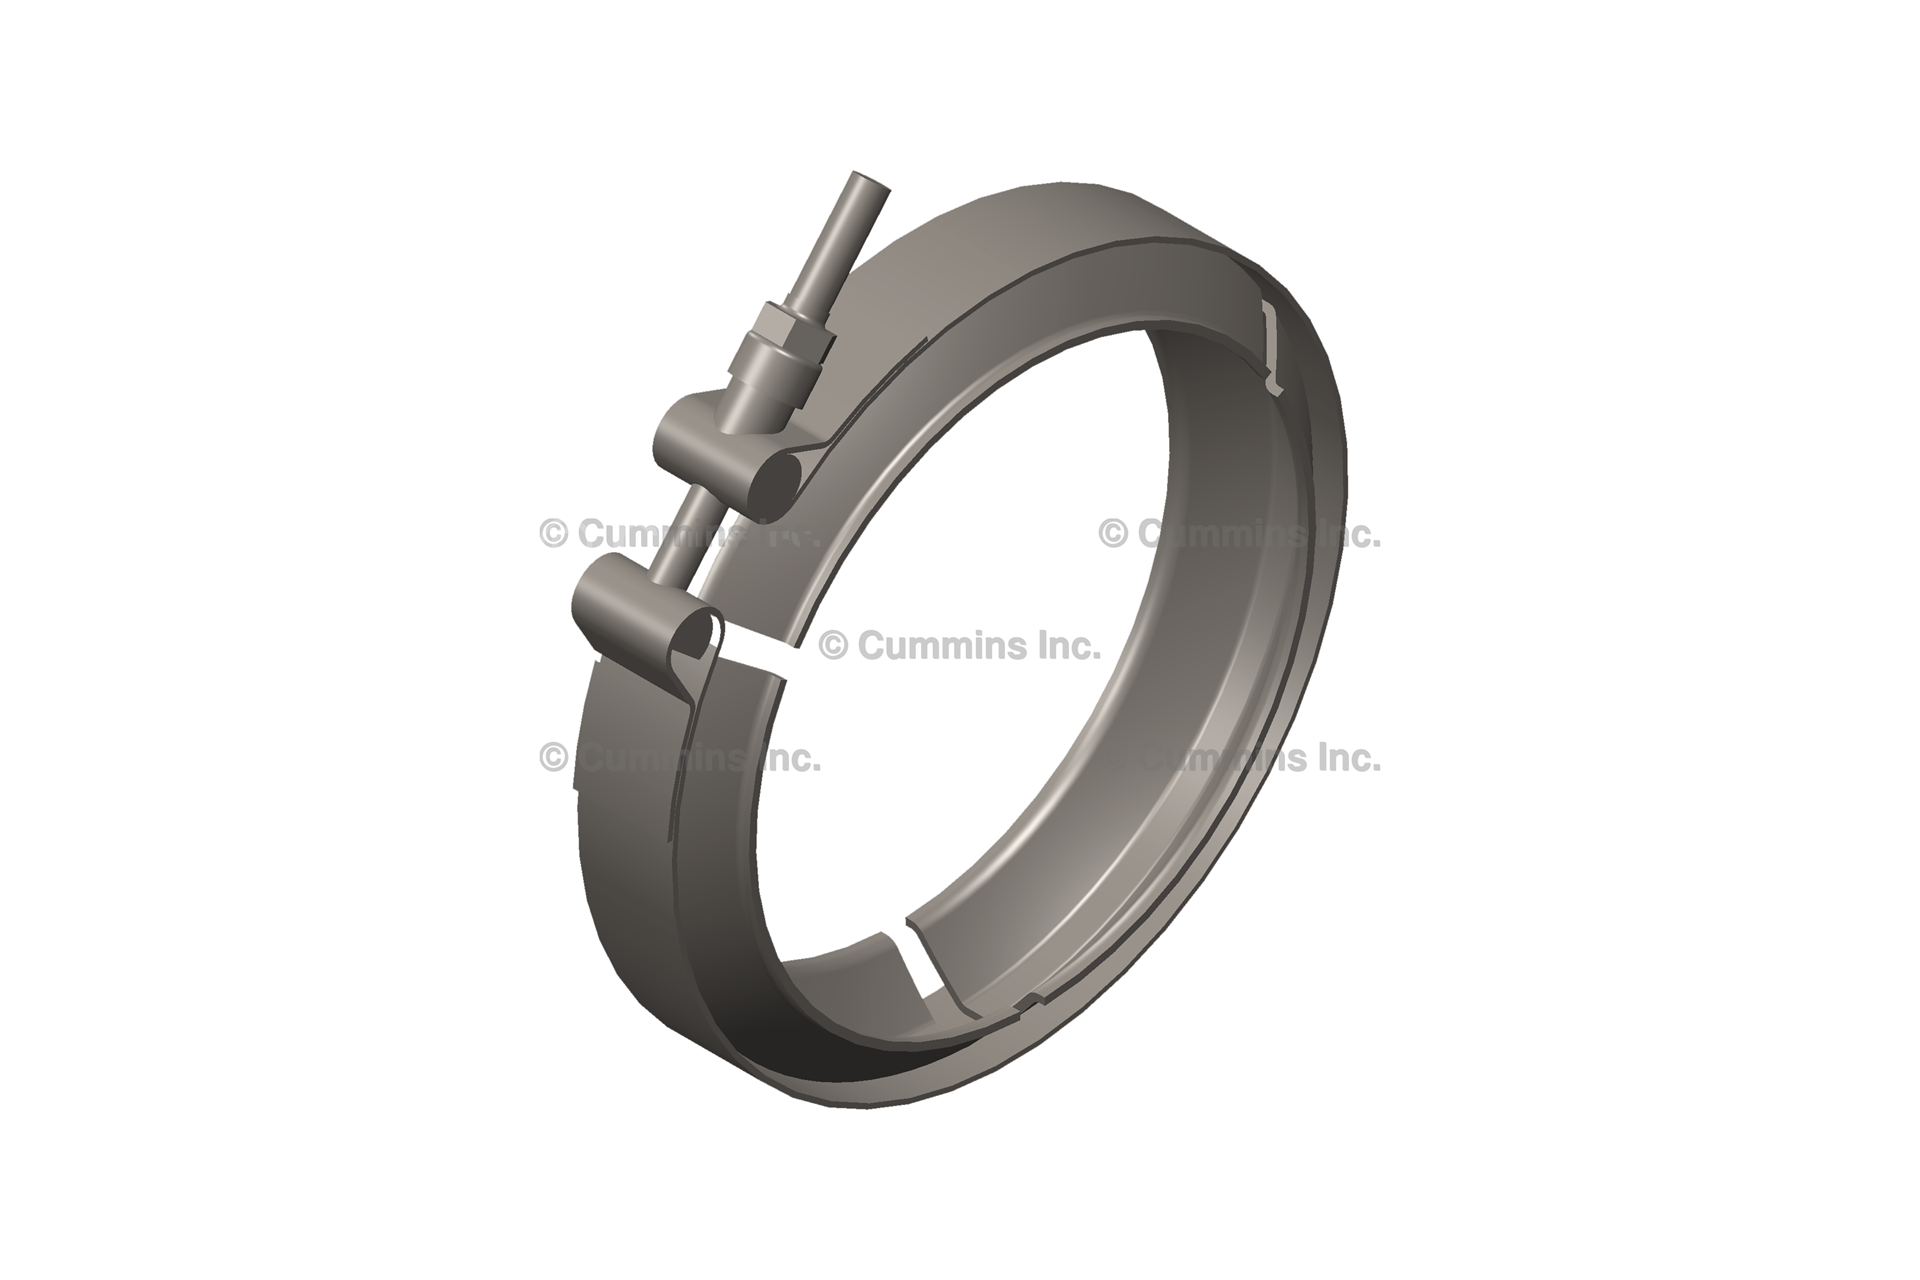 2871861, Cummins V Band Clamp - DPF Exhaust Clamp, 9 5